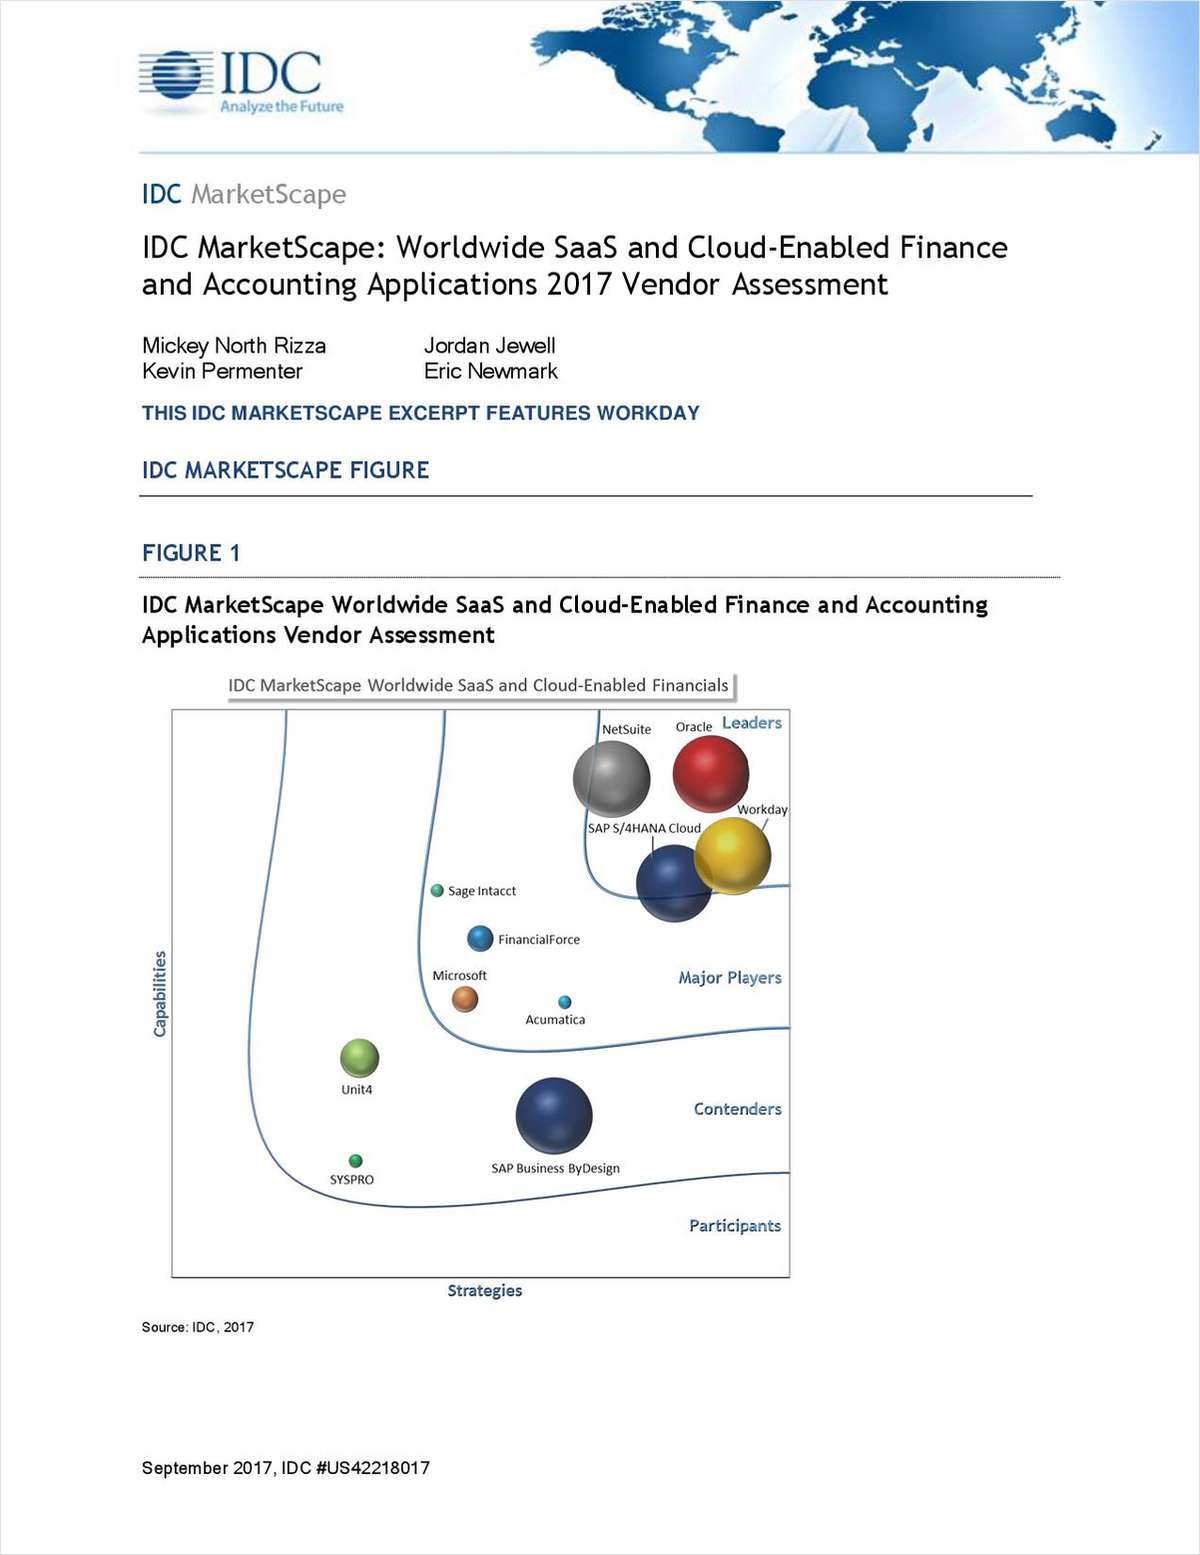 IDC MarketScape: Worldwide SaaS and Cloud-Enabled Finance and Accounting Applications 2017 Vendor Assessment